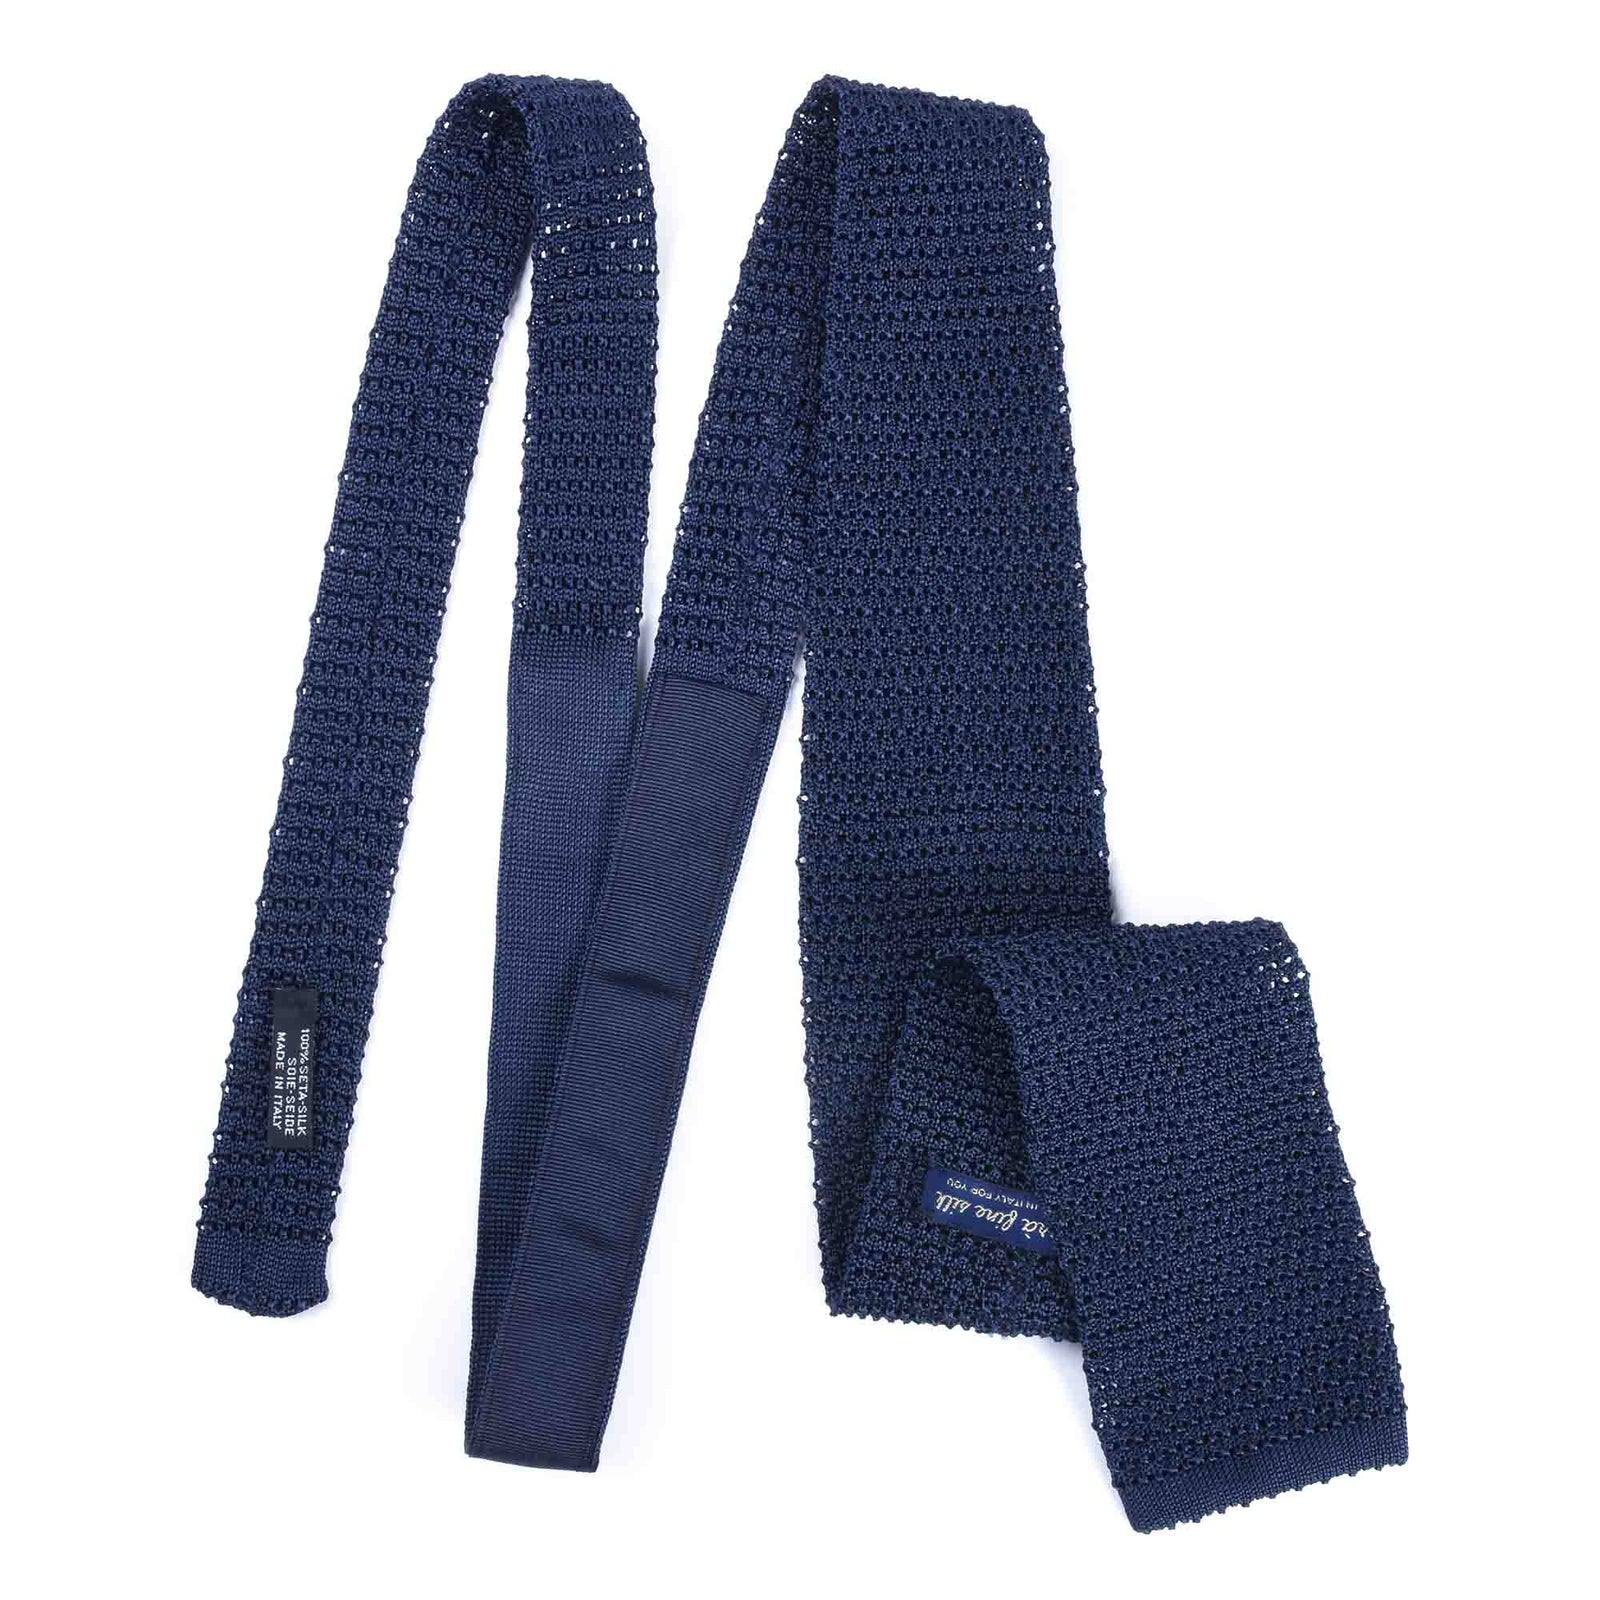 KNITTED CROCHET NAVY BLUE TIE